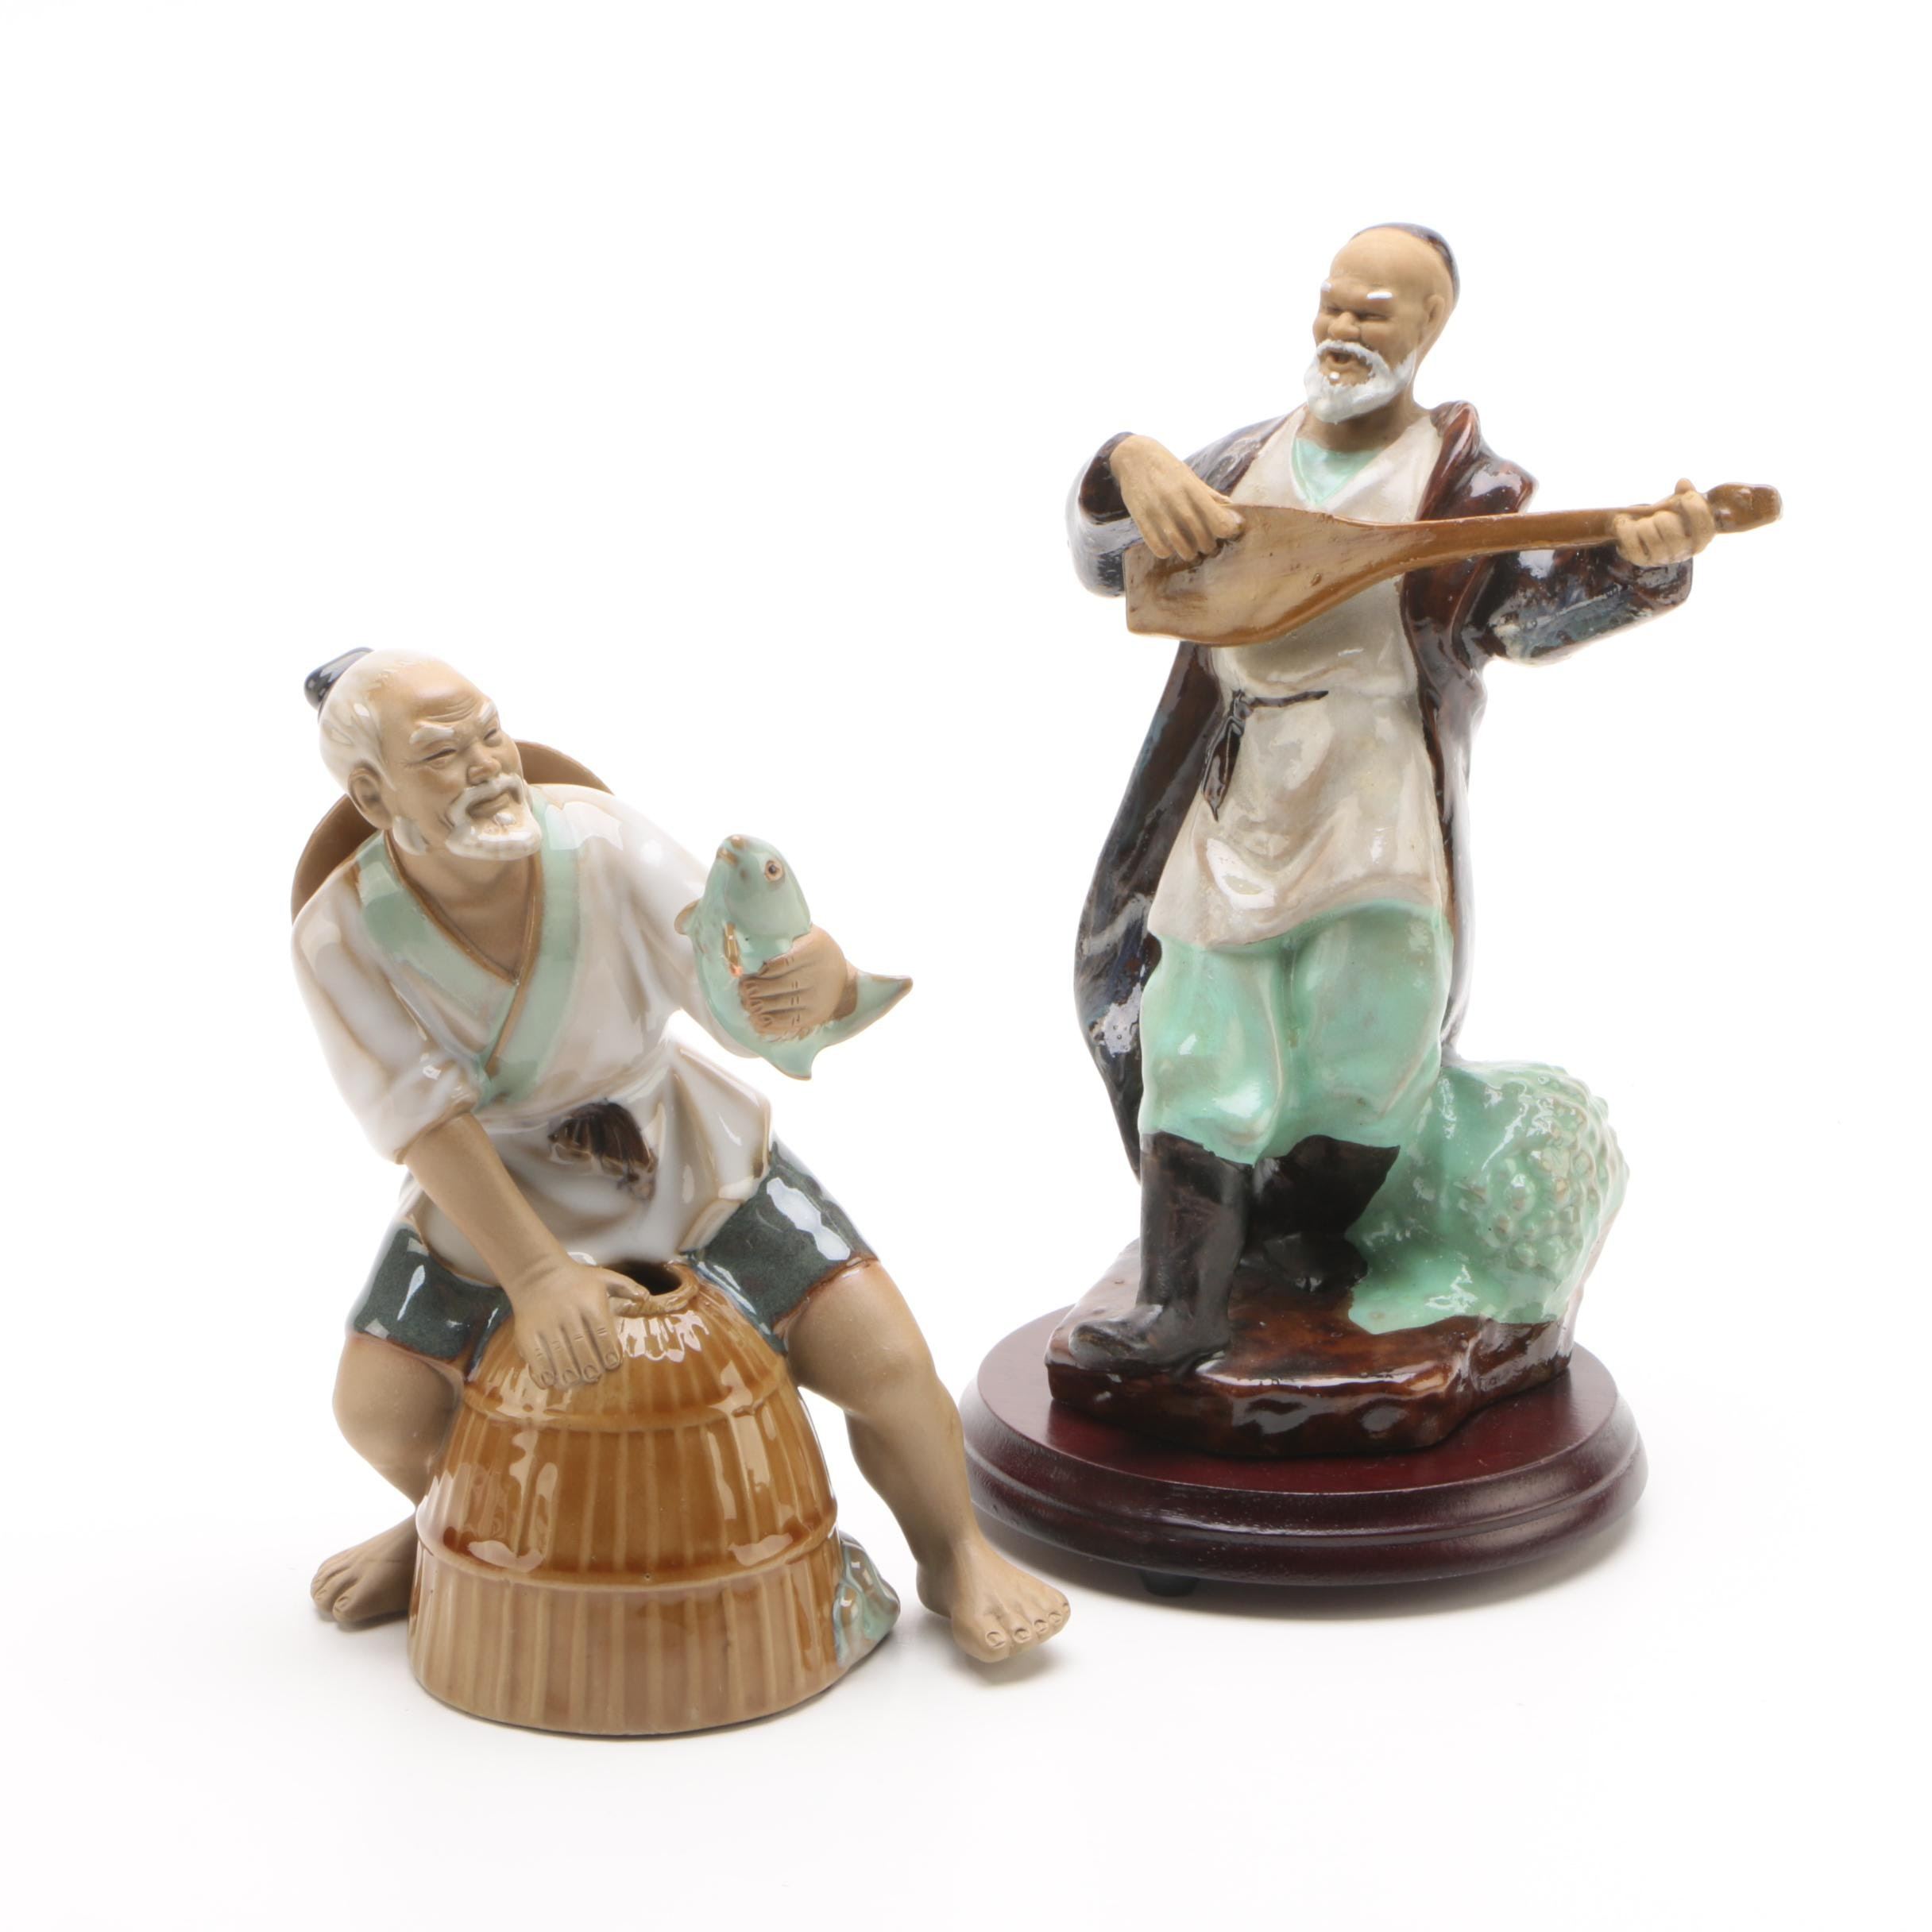 Chinese Shiwan Ware Ceramic Figurines